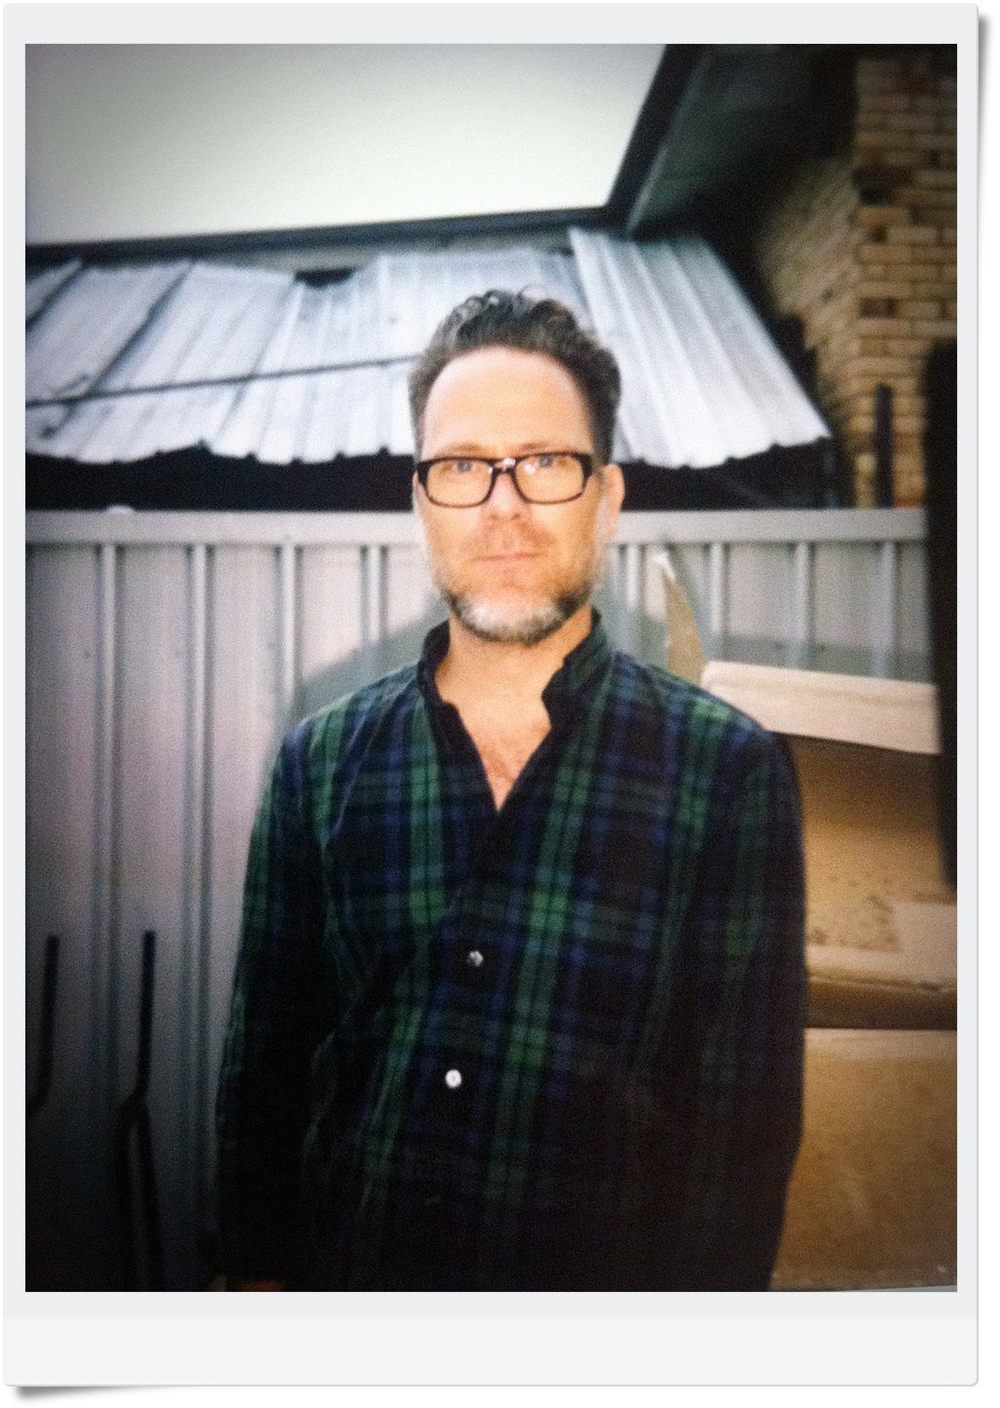 image if Simon by Anya Swan (FP100 Neg)